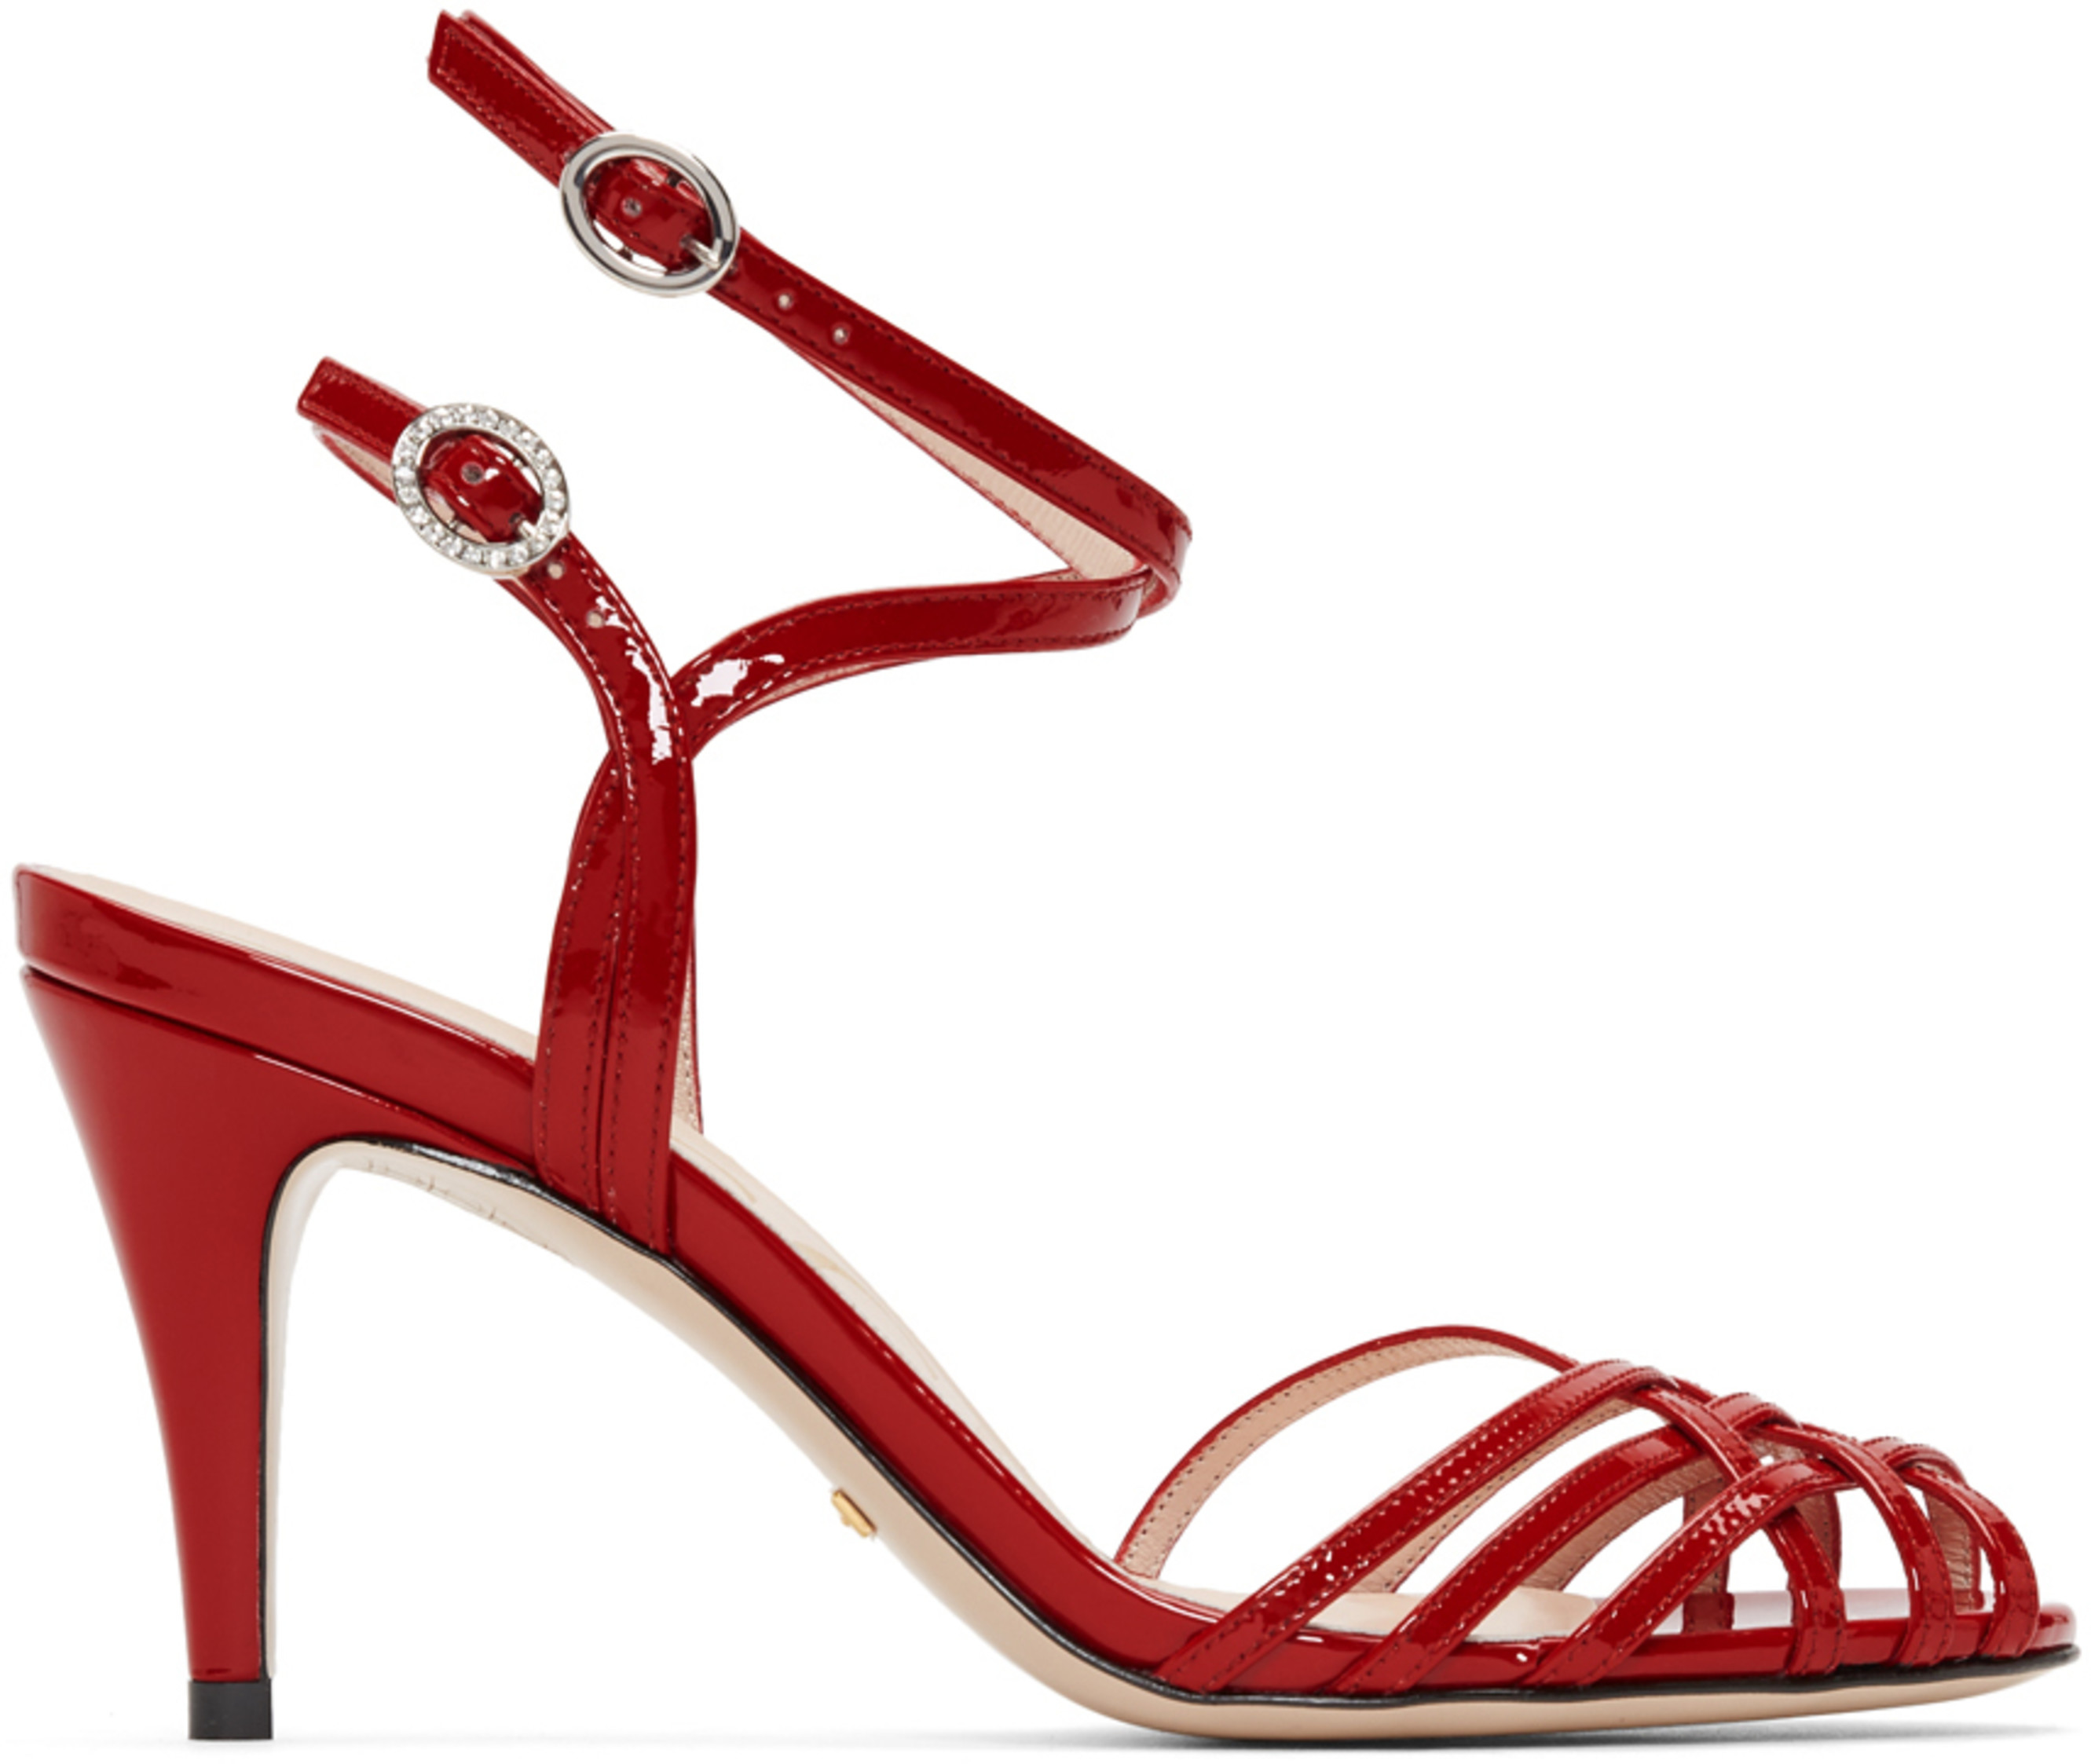 2694b2dc3a9 Gucci sandals for Women